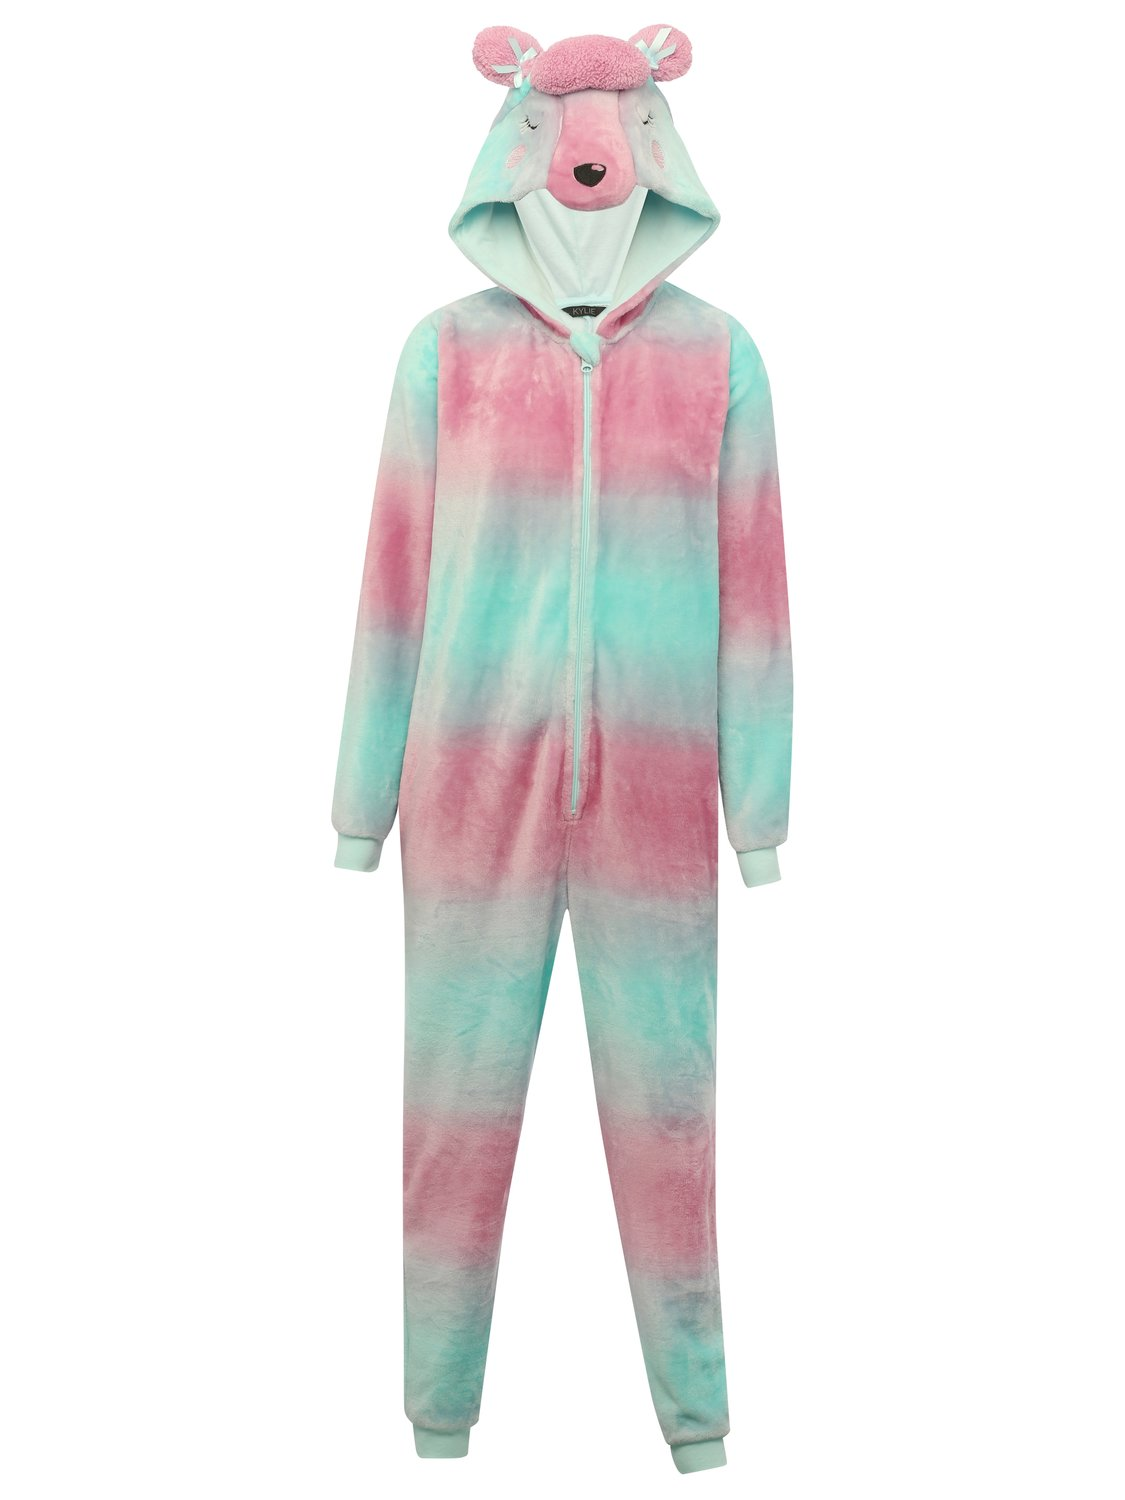 Teen girl pink and blue long sleeve zip front cuffed 3D poodle face hooded fleece pyjama onesie  - Multicolour